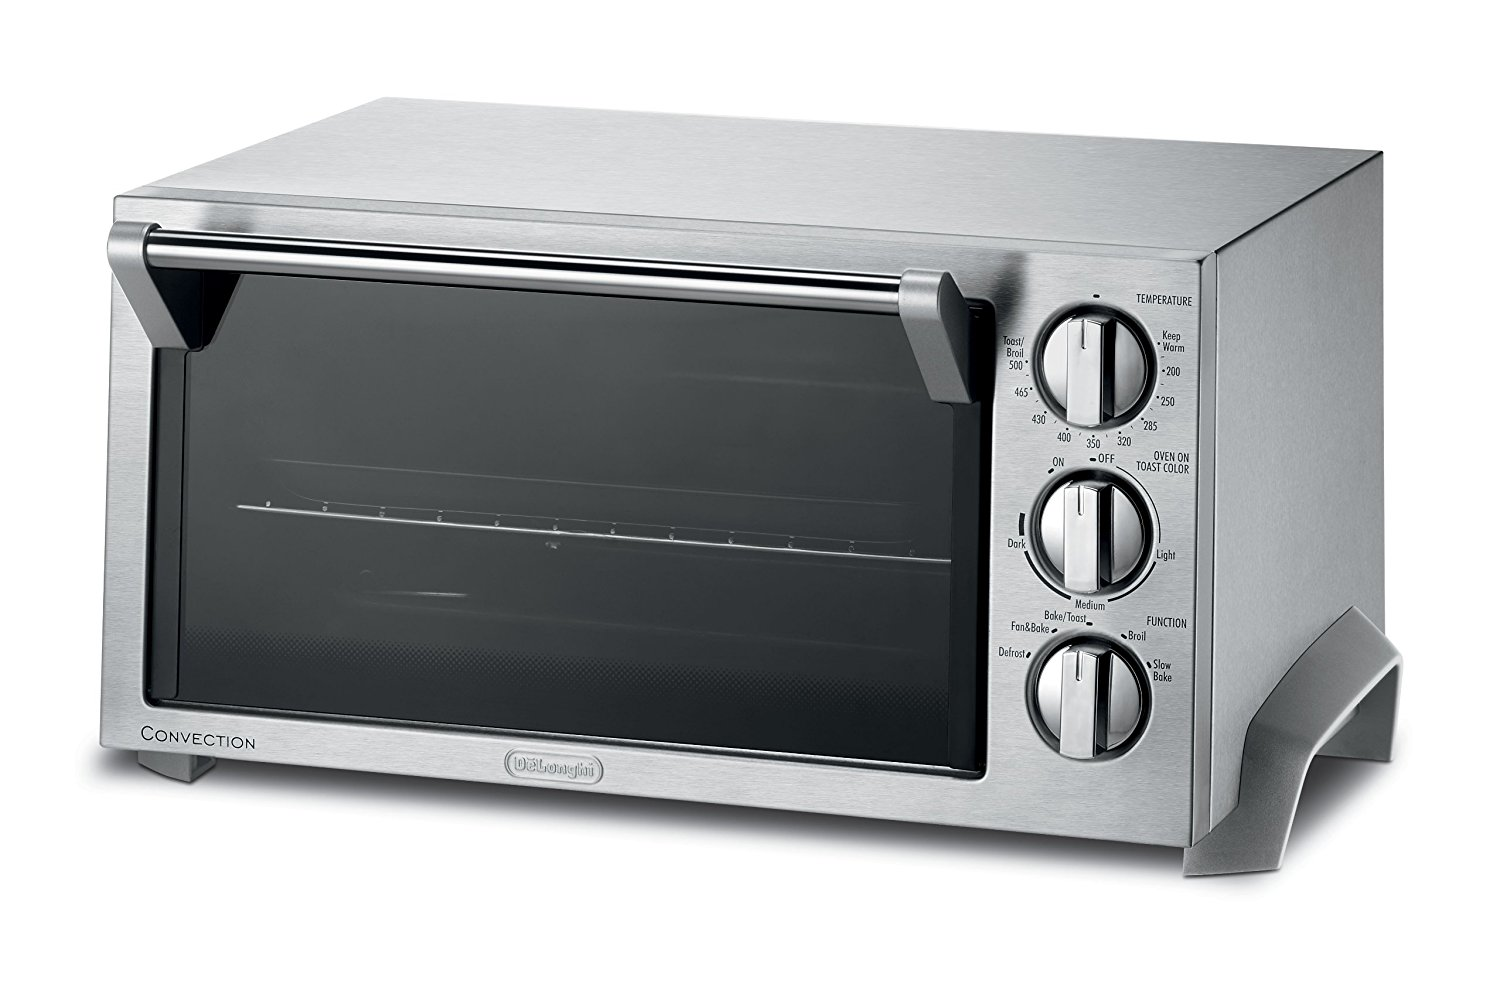 Delonghi Eo1270 6 Slice Convection Toaster Oven Digimancave